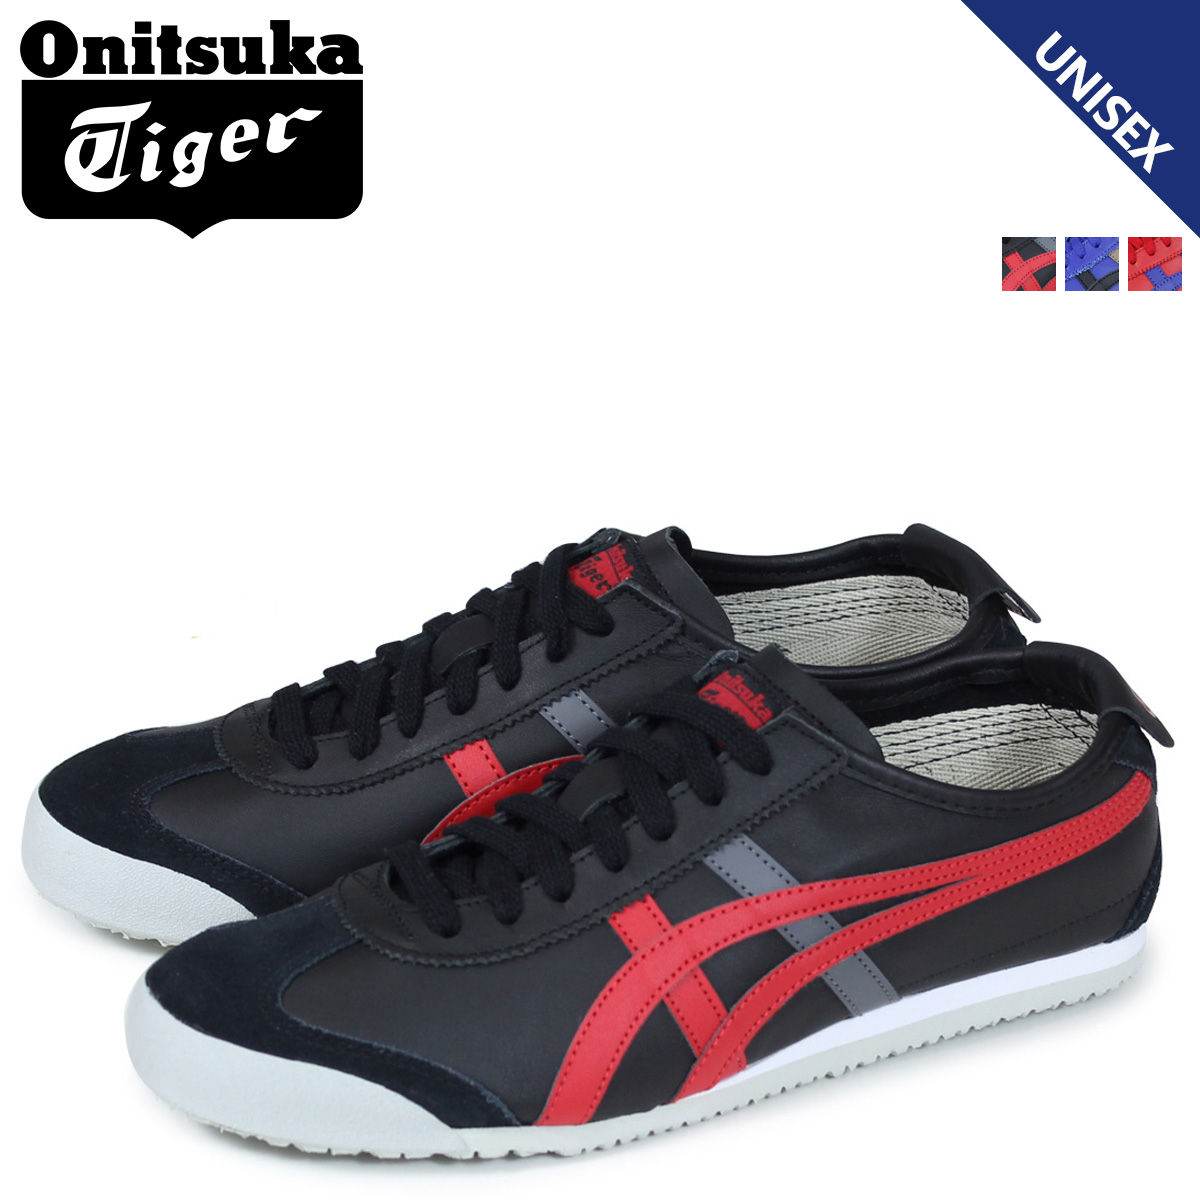 newest collection cdc61 2b484 Onitsuka tiger Onitsuka Tiger Mexico 66 sneakers asics men gap Dis ASICS  MEXICO 66 TH4J2L 2345 4590 9023